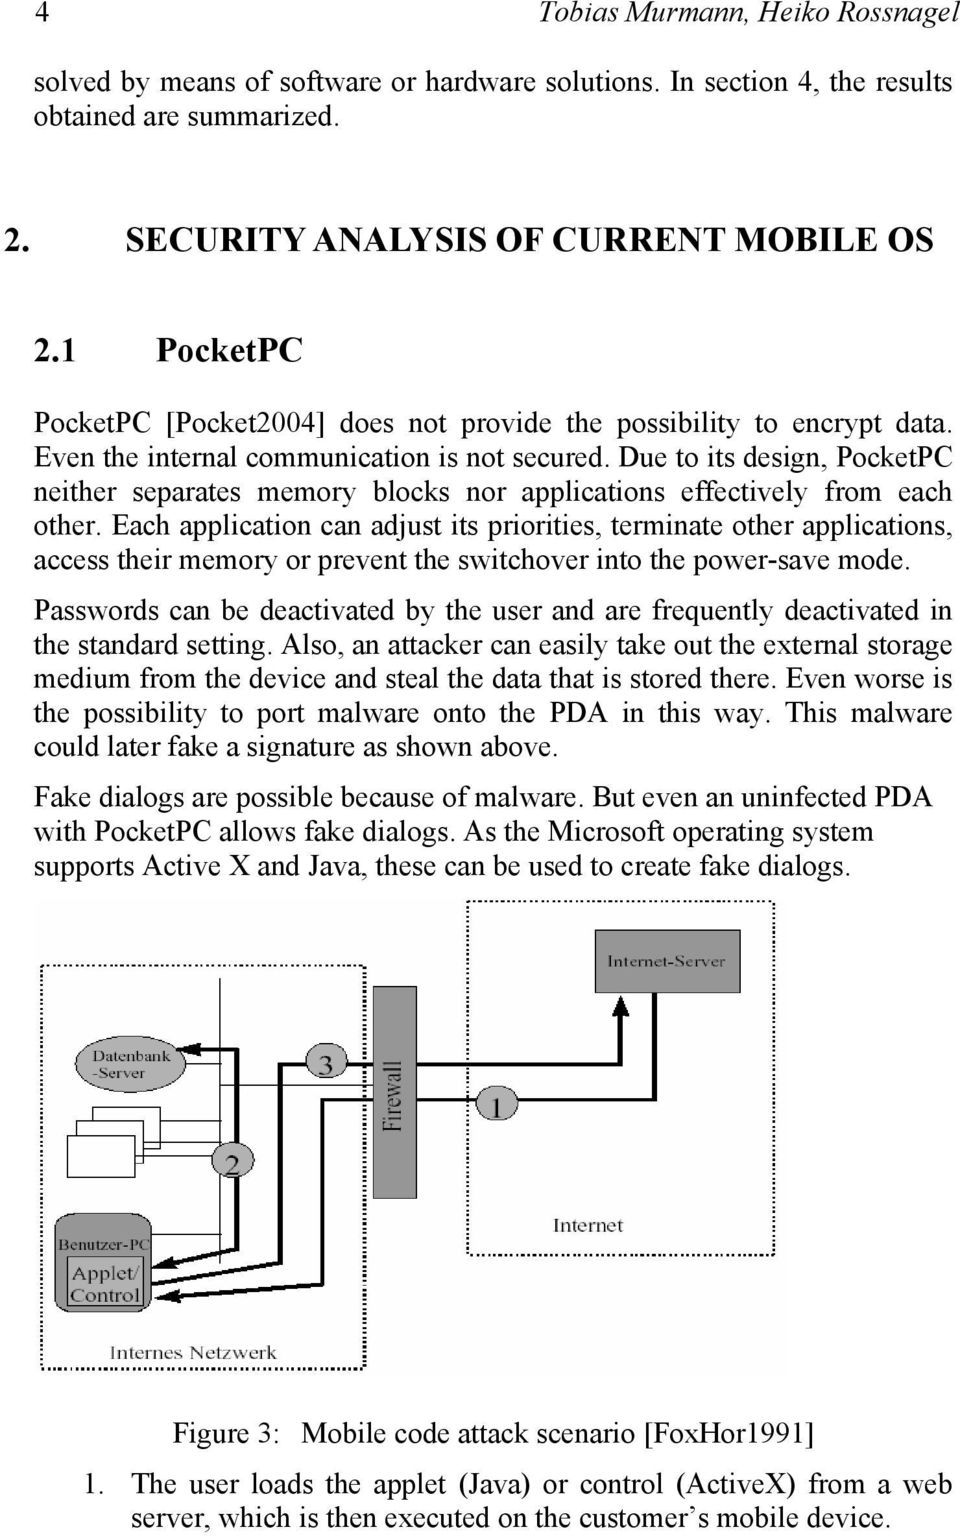 Due to its design, PocketPC neither separates memory blocks nor applications effectively from each other.